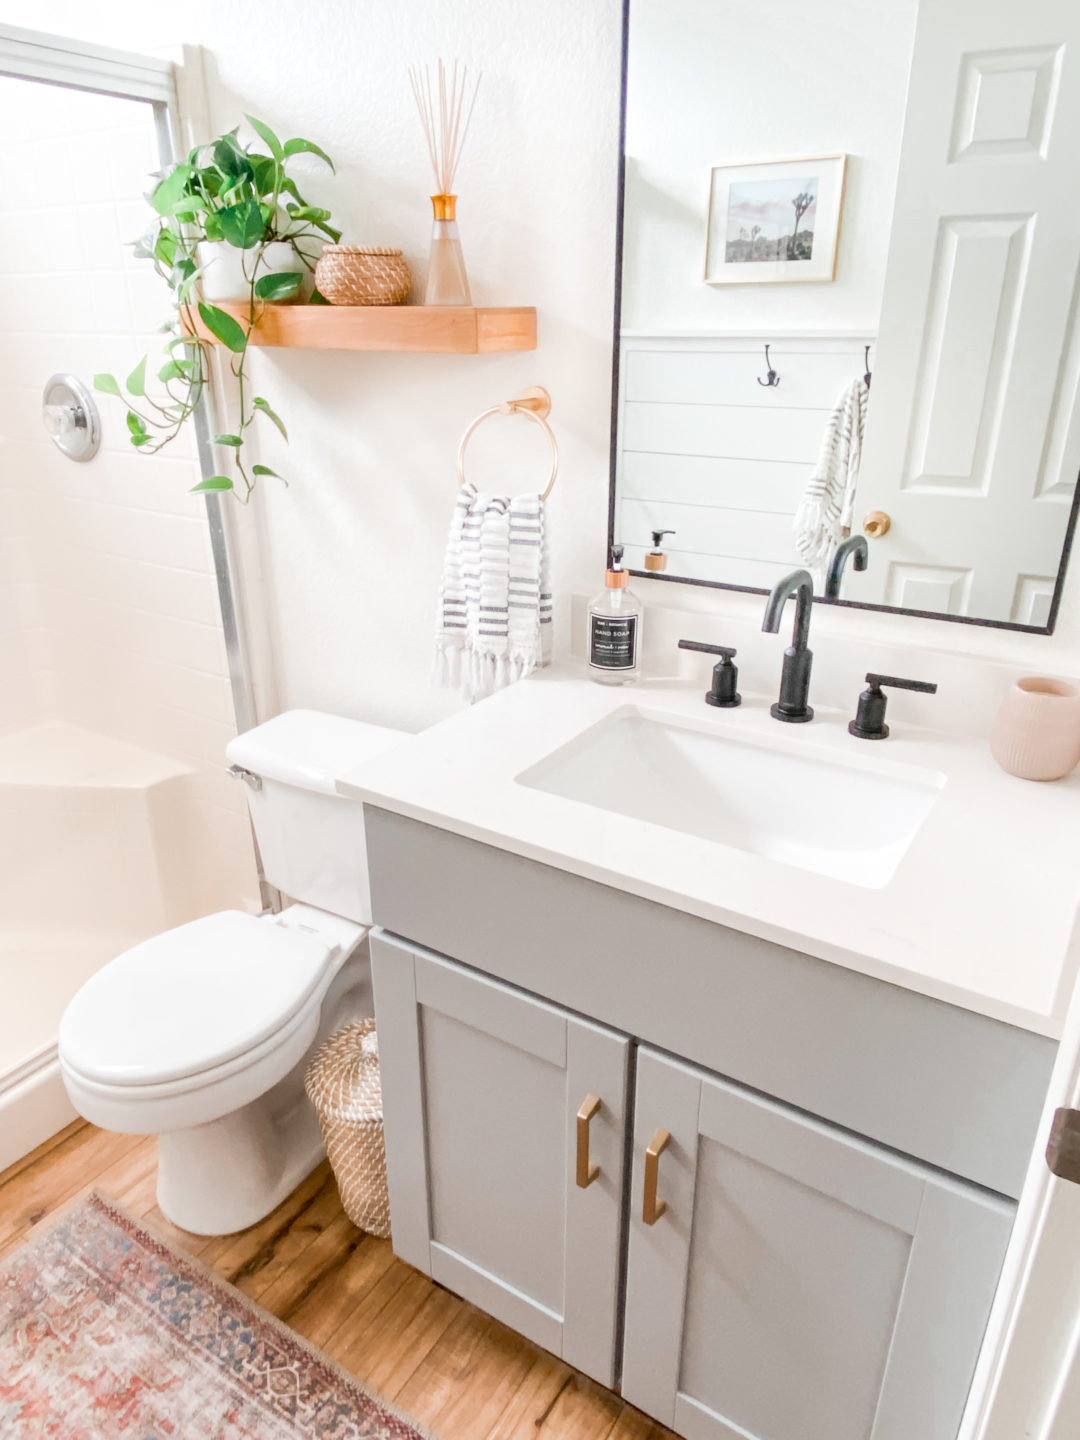 Small Bathroom Remodel Ideas: Befor and After | Domestic ... on Small Bathroom Ideas Pictures  id=95879